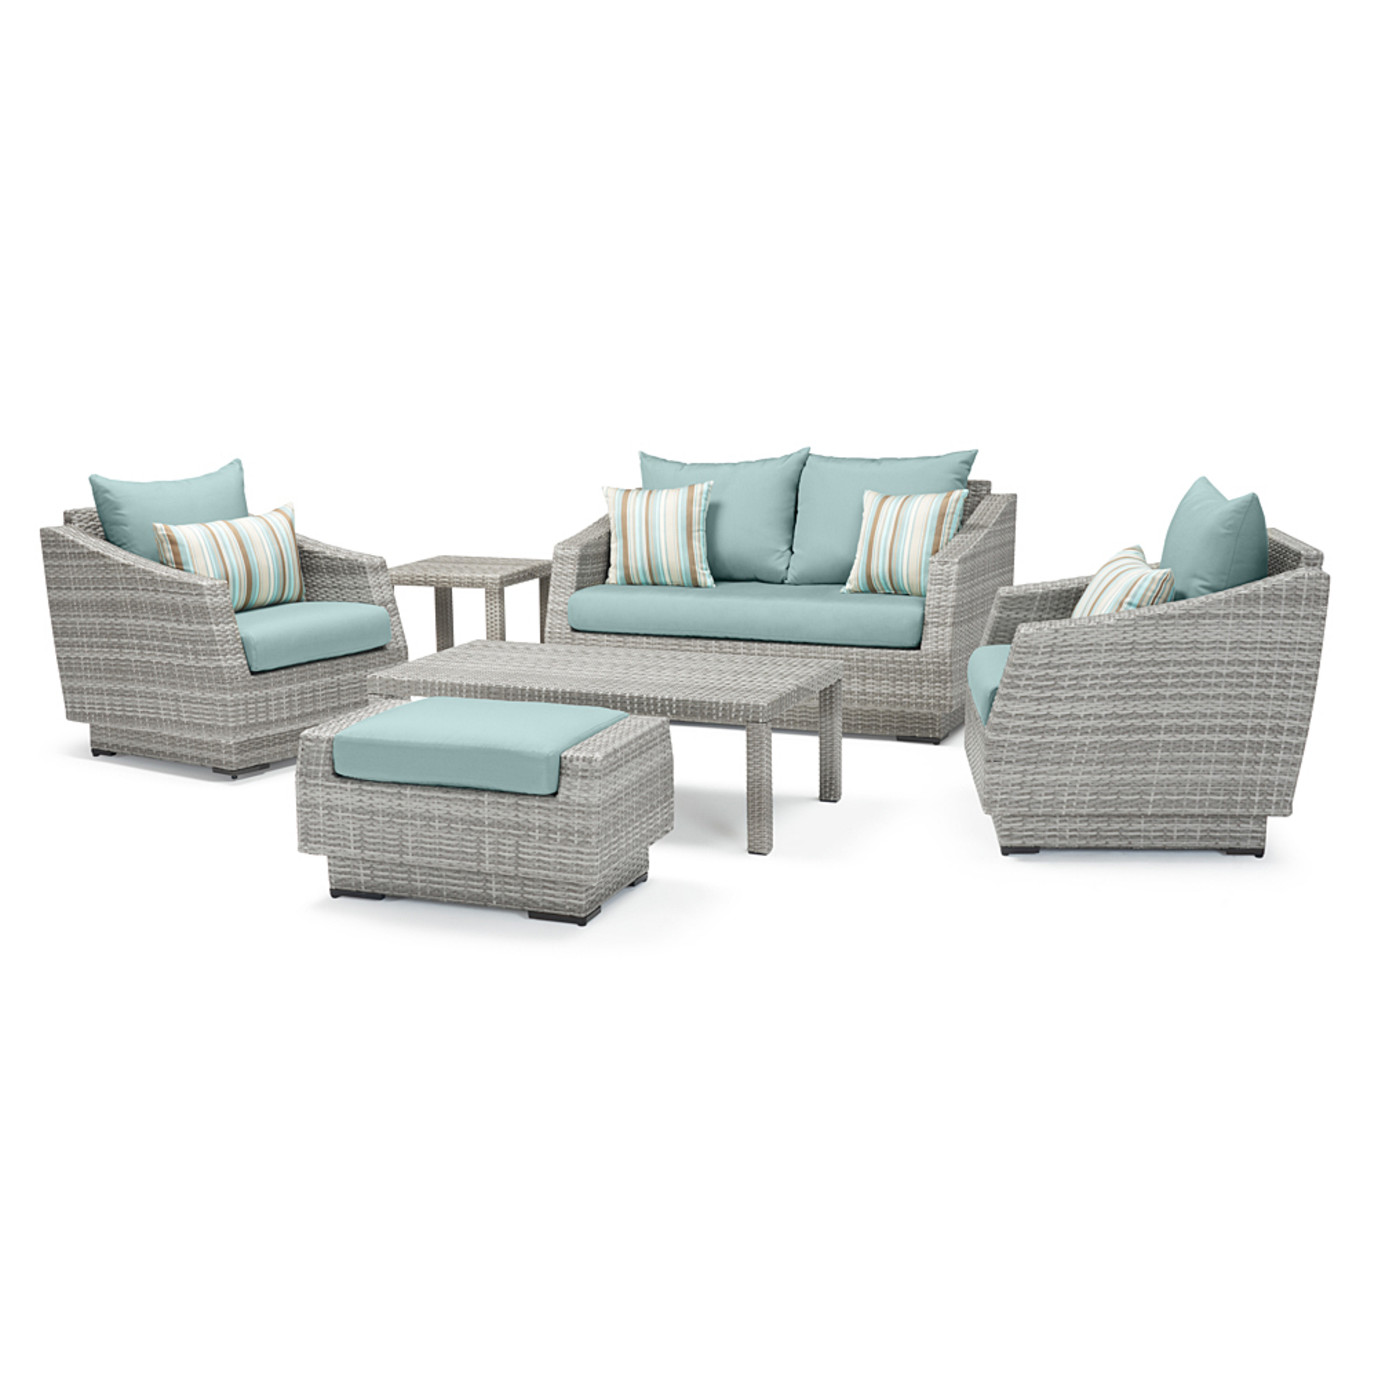 Cannes™ 6pc Love and Club Seating Set - Bliss Blue